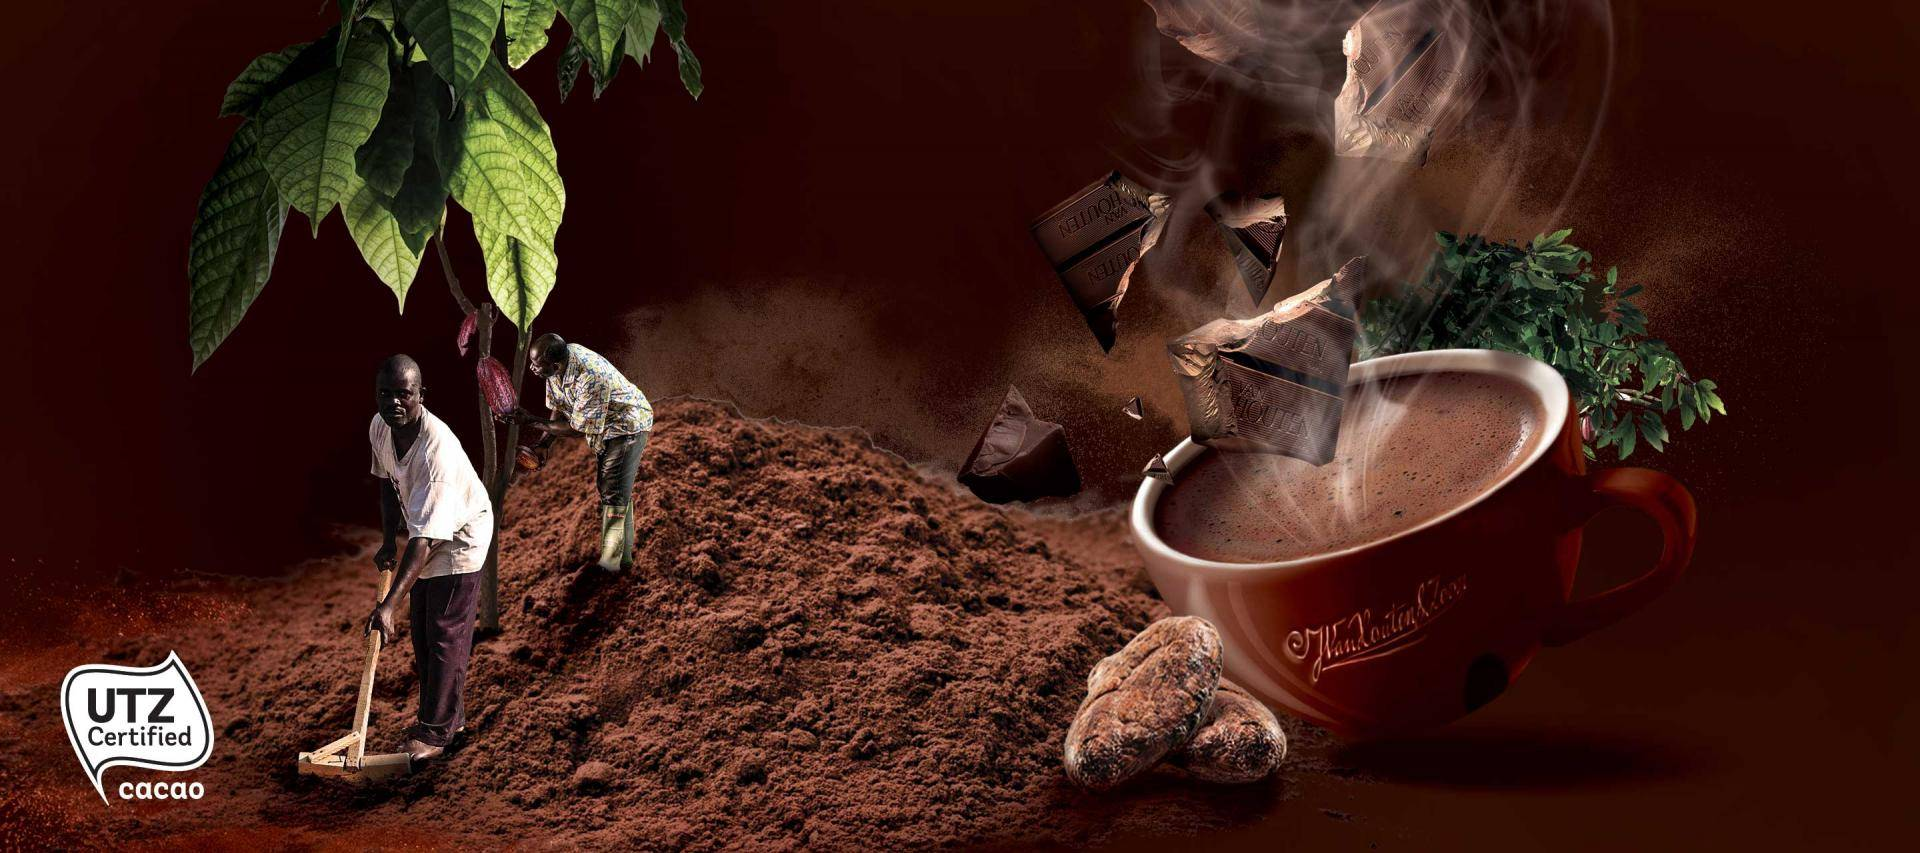 Making sustainable chocolate the norm